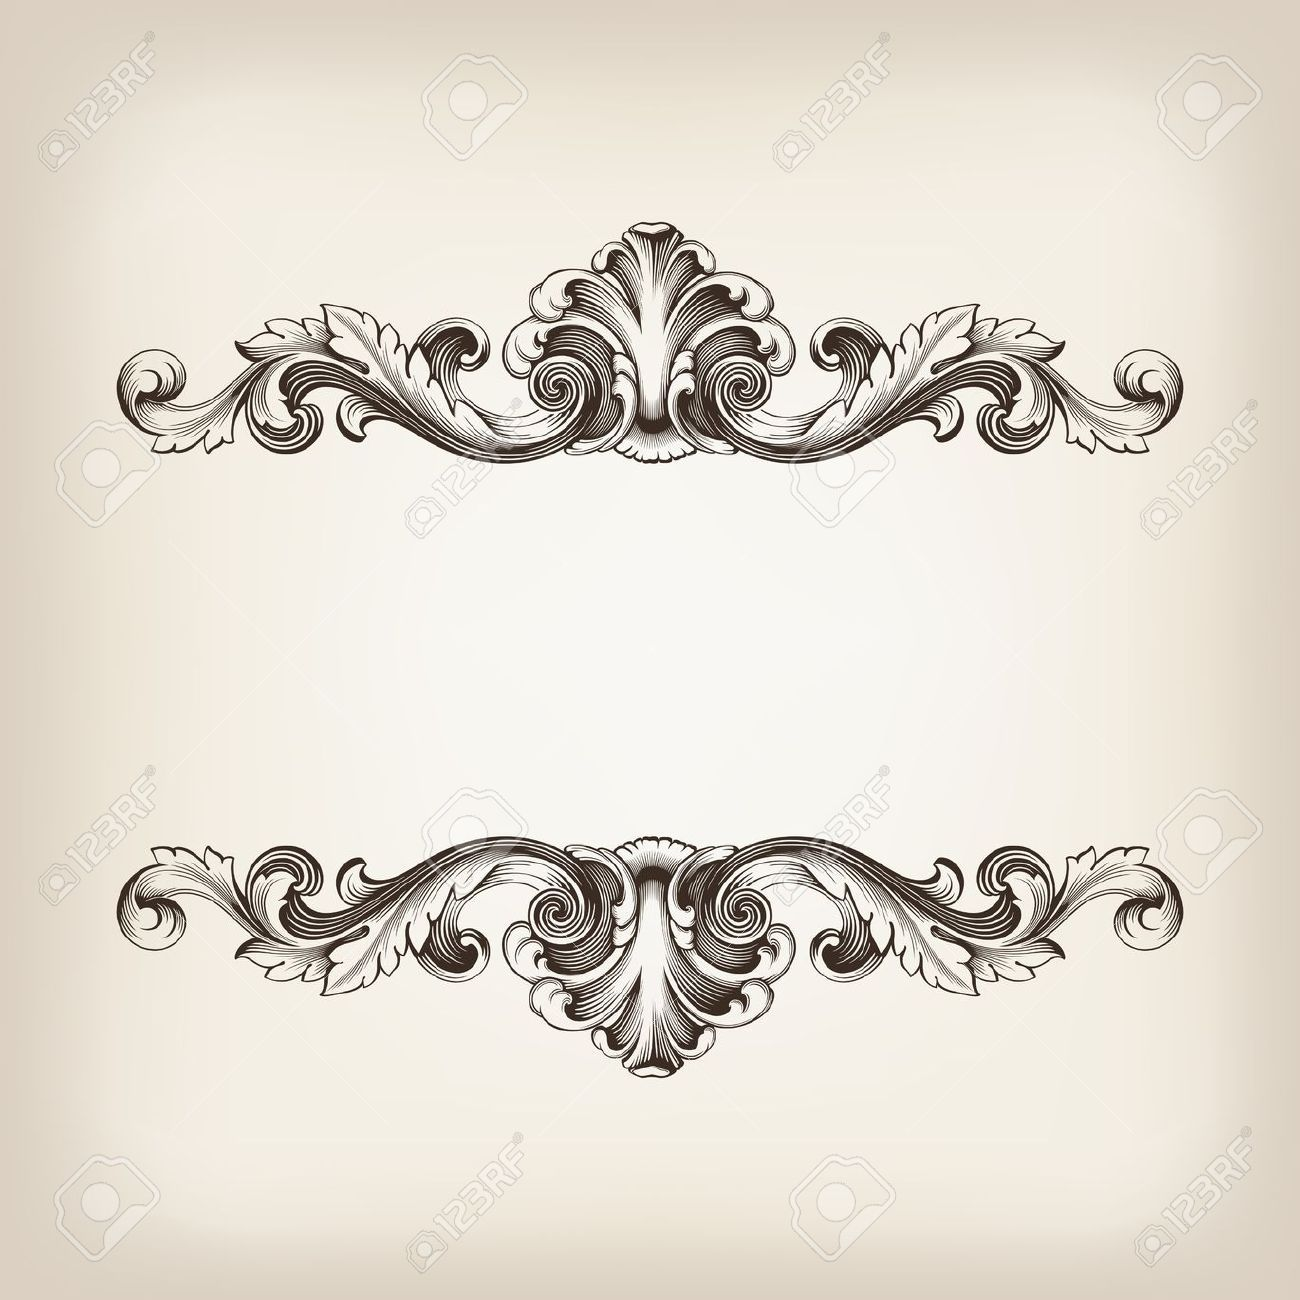 Vintage Design Vintage Border Frame Filigree Engraving With Retro